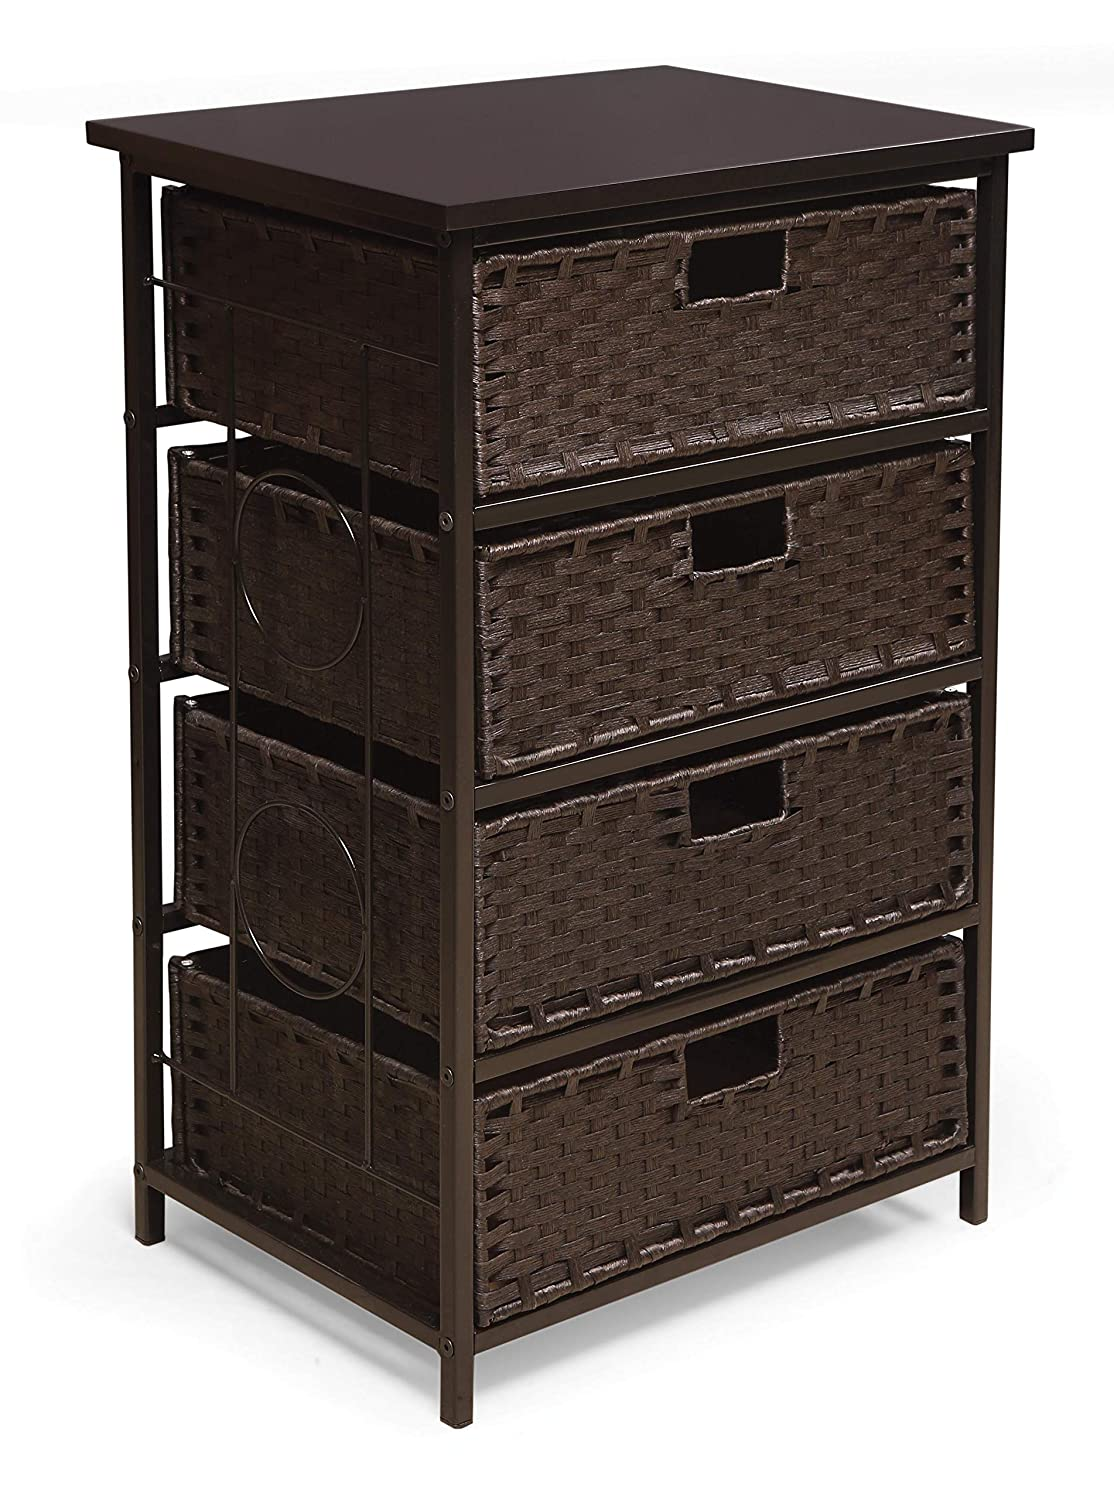 August Complete Free Shipping Collection Tall Four Ranking TOP18 Drawer Storage Basket Unit